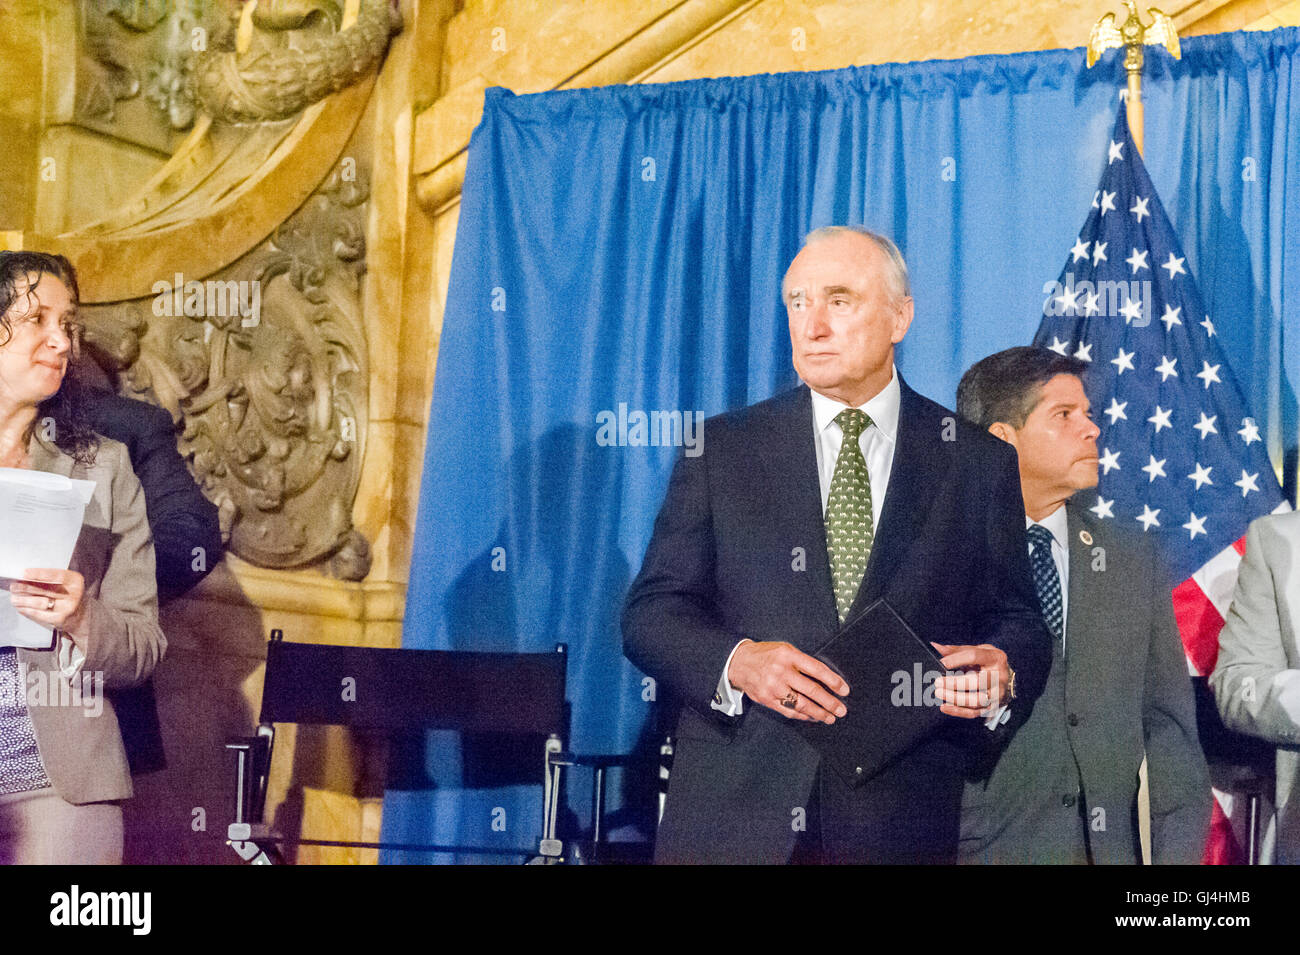 NYPD Commissioner William Bratton at a bill signing related to NYPD reporting procedures on Wednesday, August 3, - Stock Image